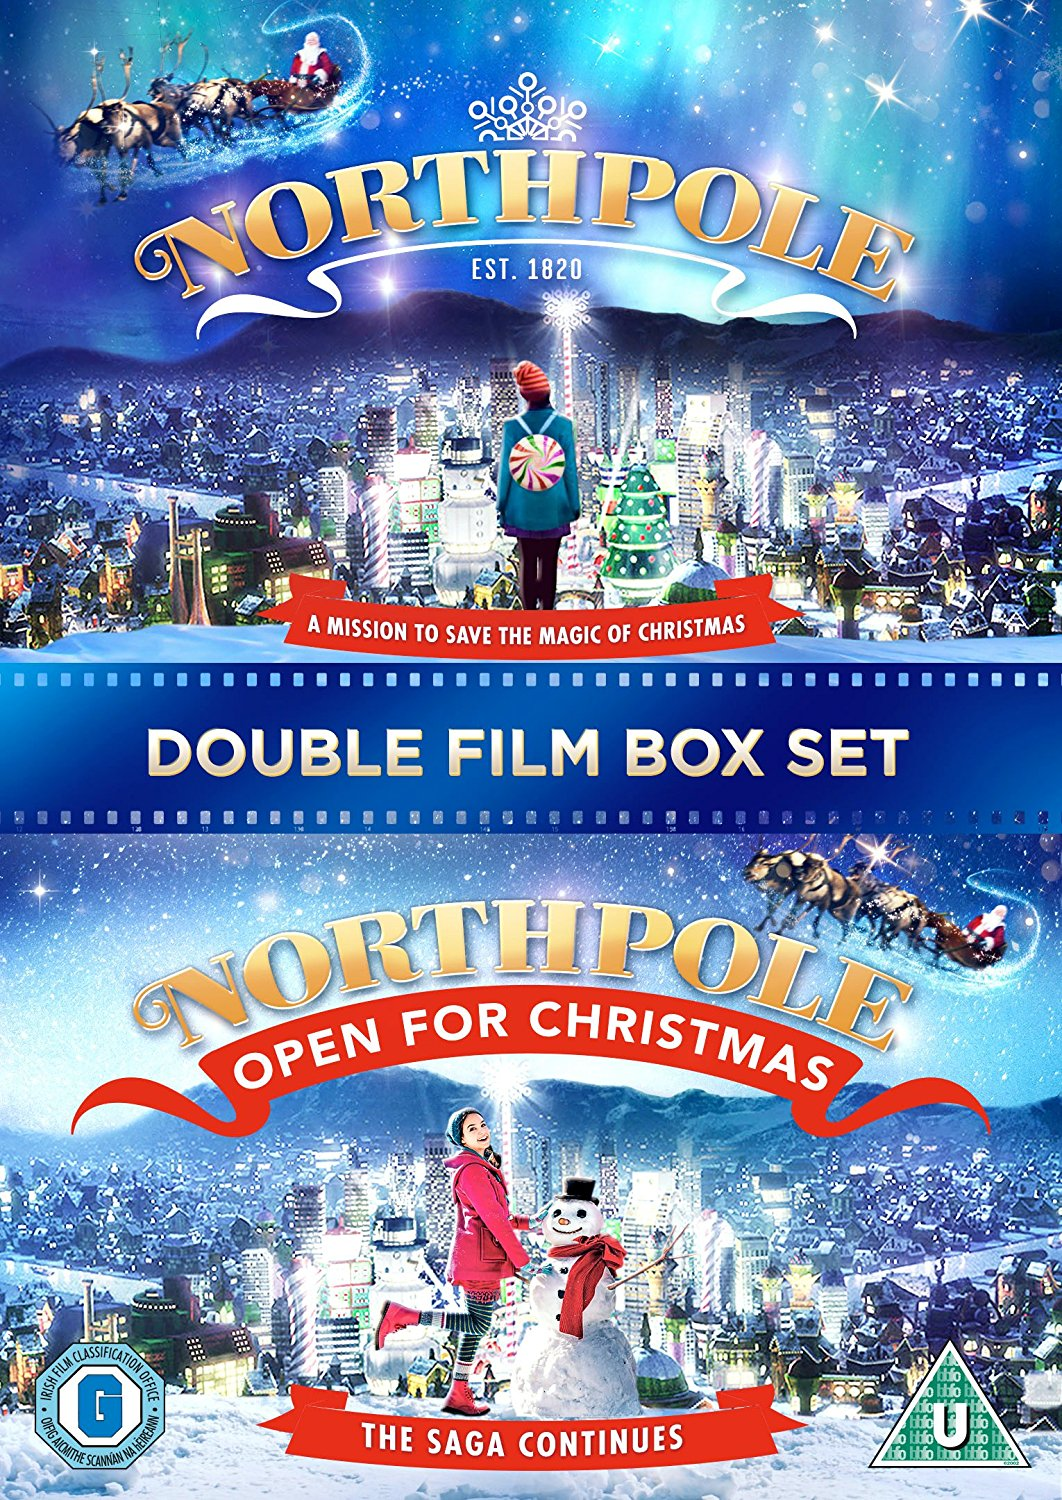 northpole northpole open for christmas dvd 2014 original - Stores Open On Christmas 2014